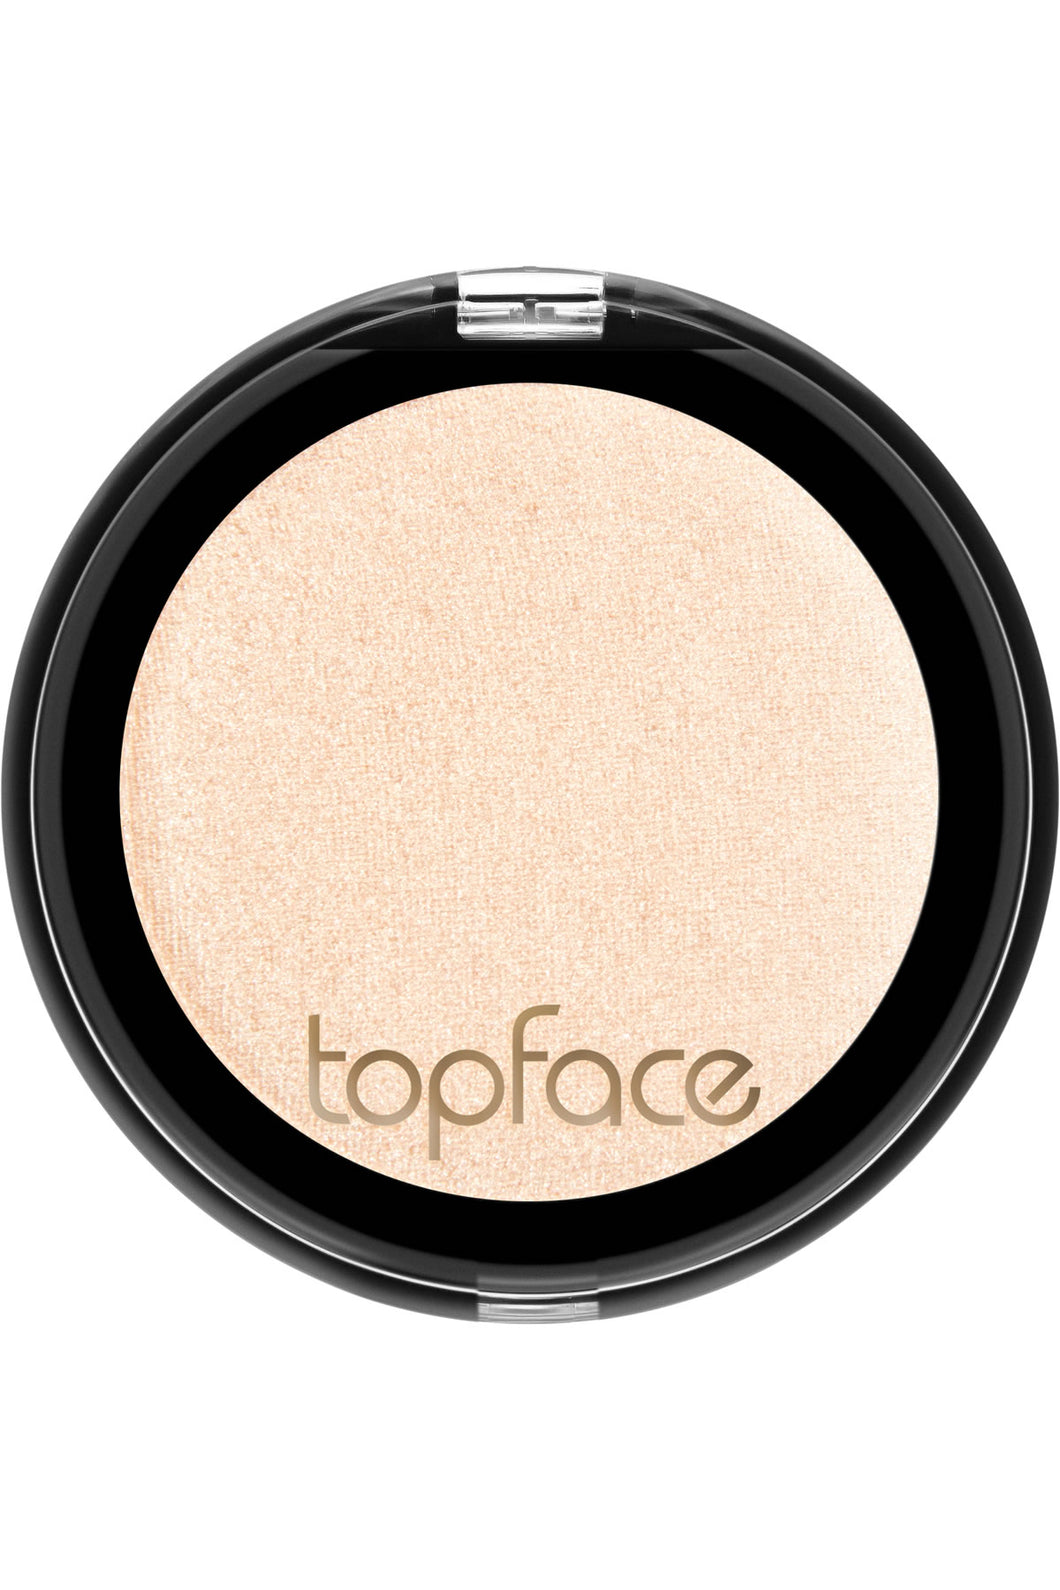 Topface - Instyle Pearl Mono Eyeshadow - 103 - Shimmer Touch